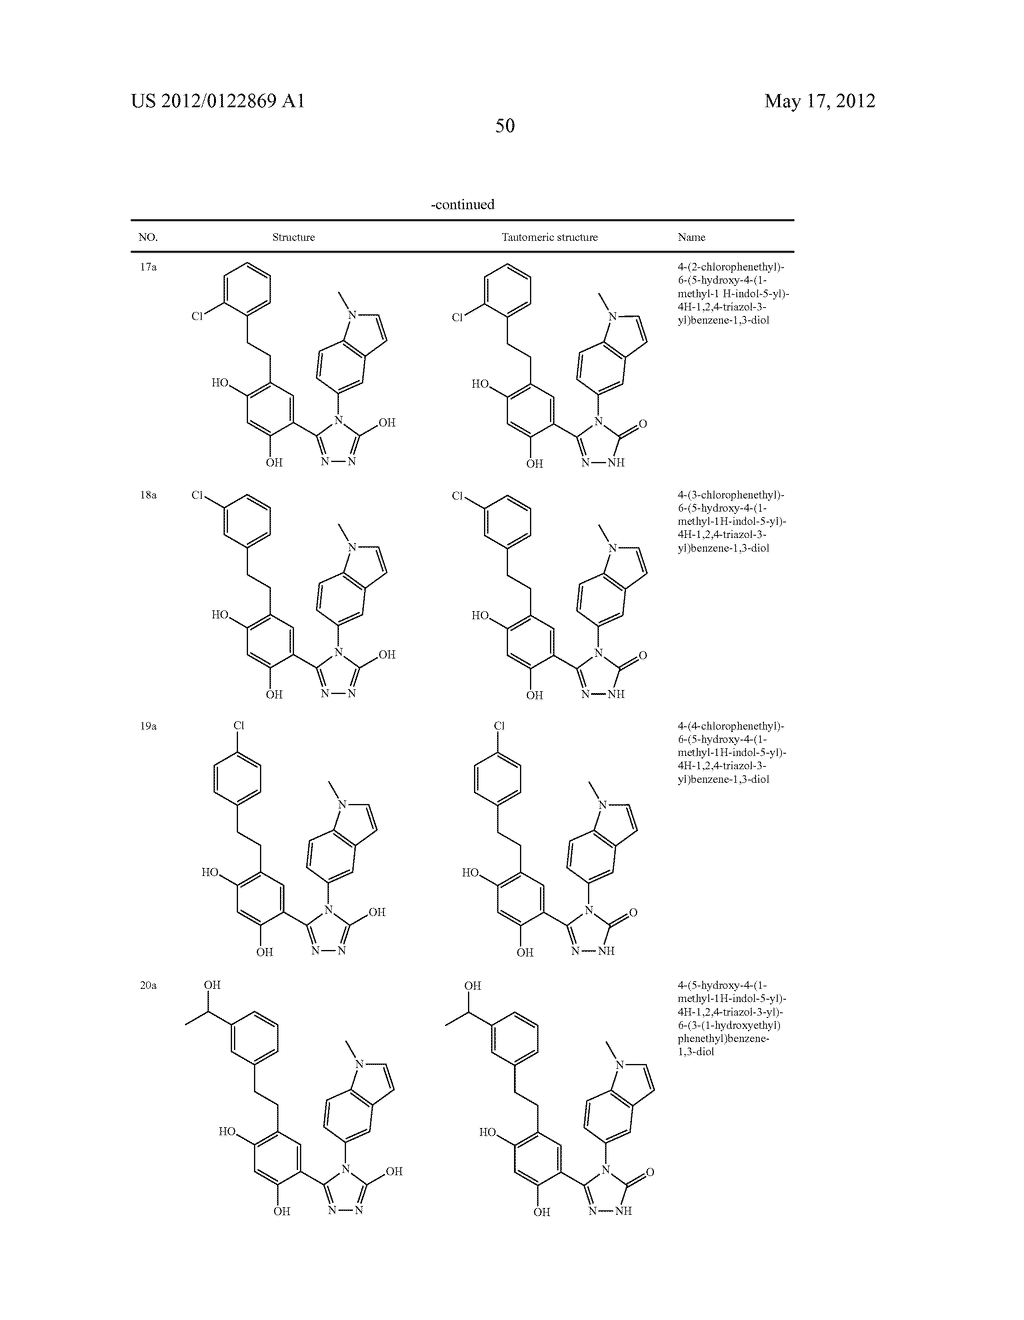 TRIZAOLE COMPOUNDS THAT MODULATE HSP90 ACTIVITY - diagram, schematic, and image 51